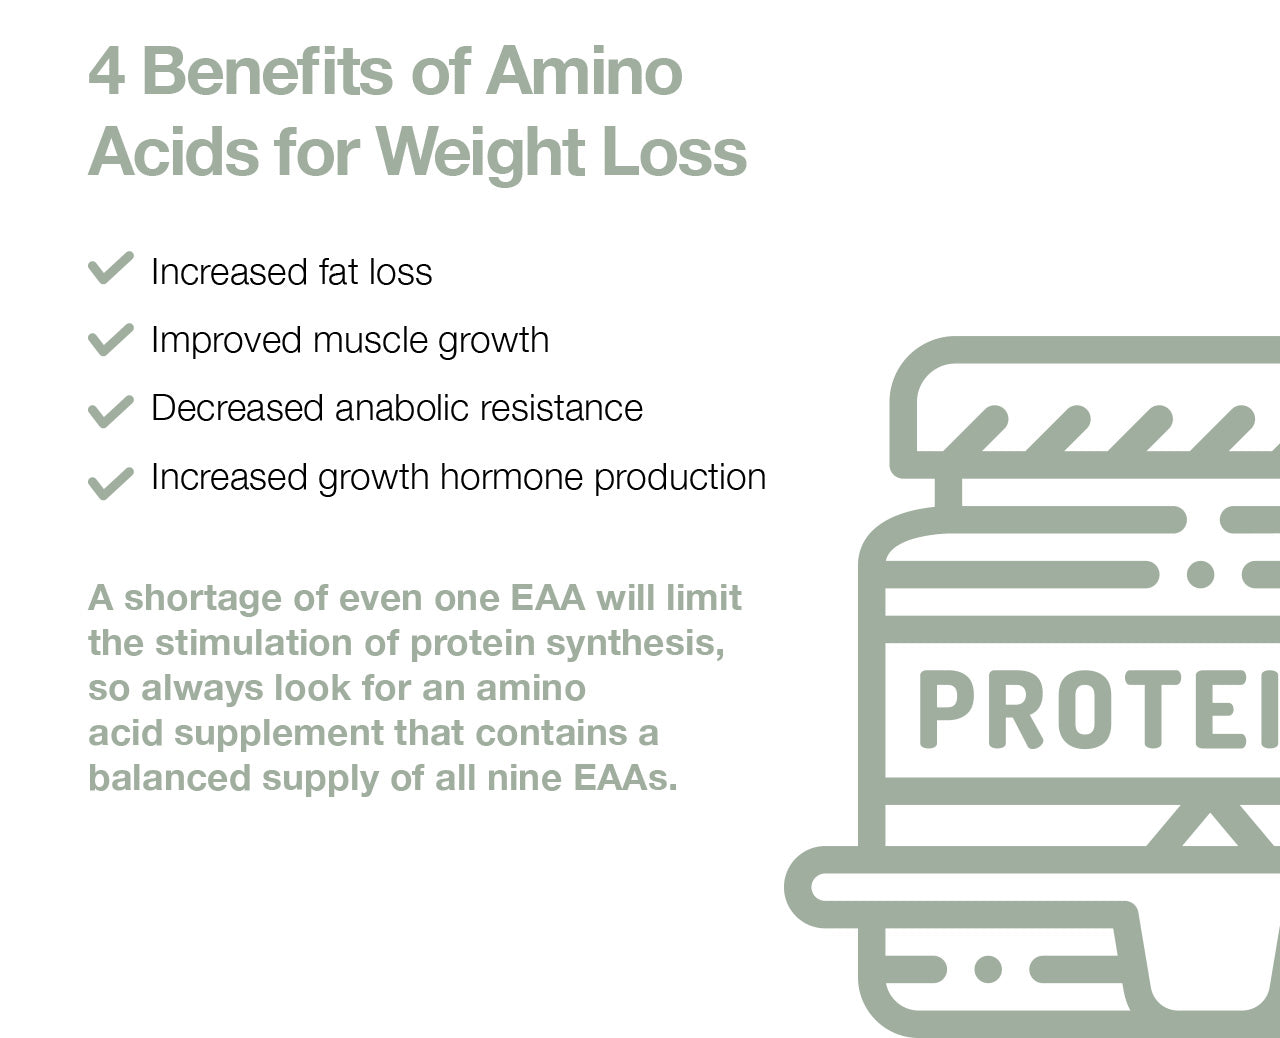 4 Benefits of Amino Acids for Weight Loss